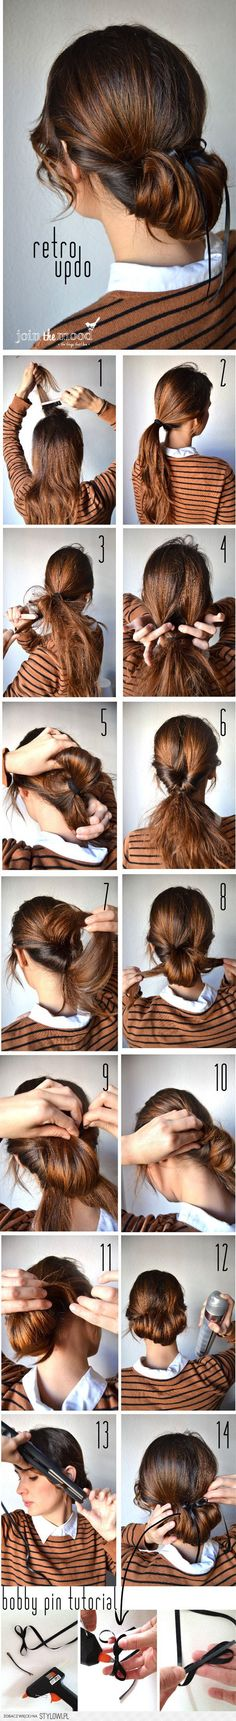 I'm doing my cousin's hair for her wedding. :) this is what we are doing! so excited!!